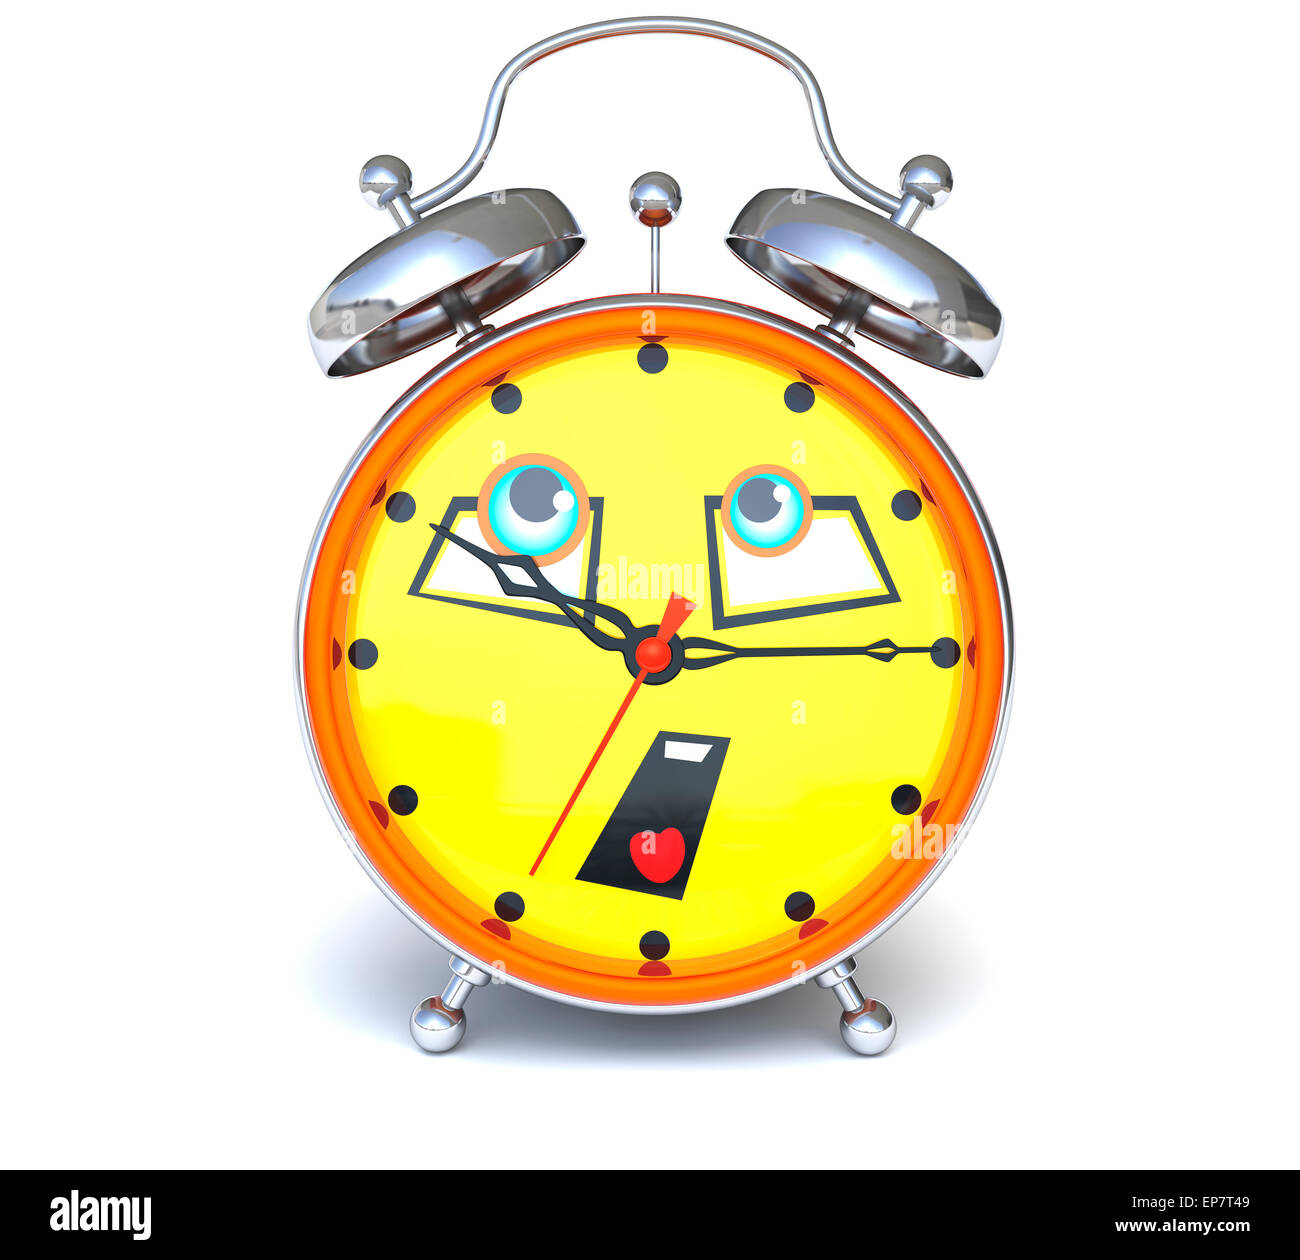 Alarm clock with face - Stock Image